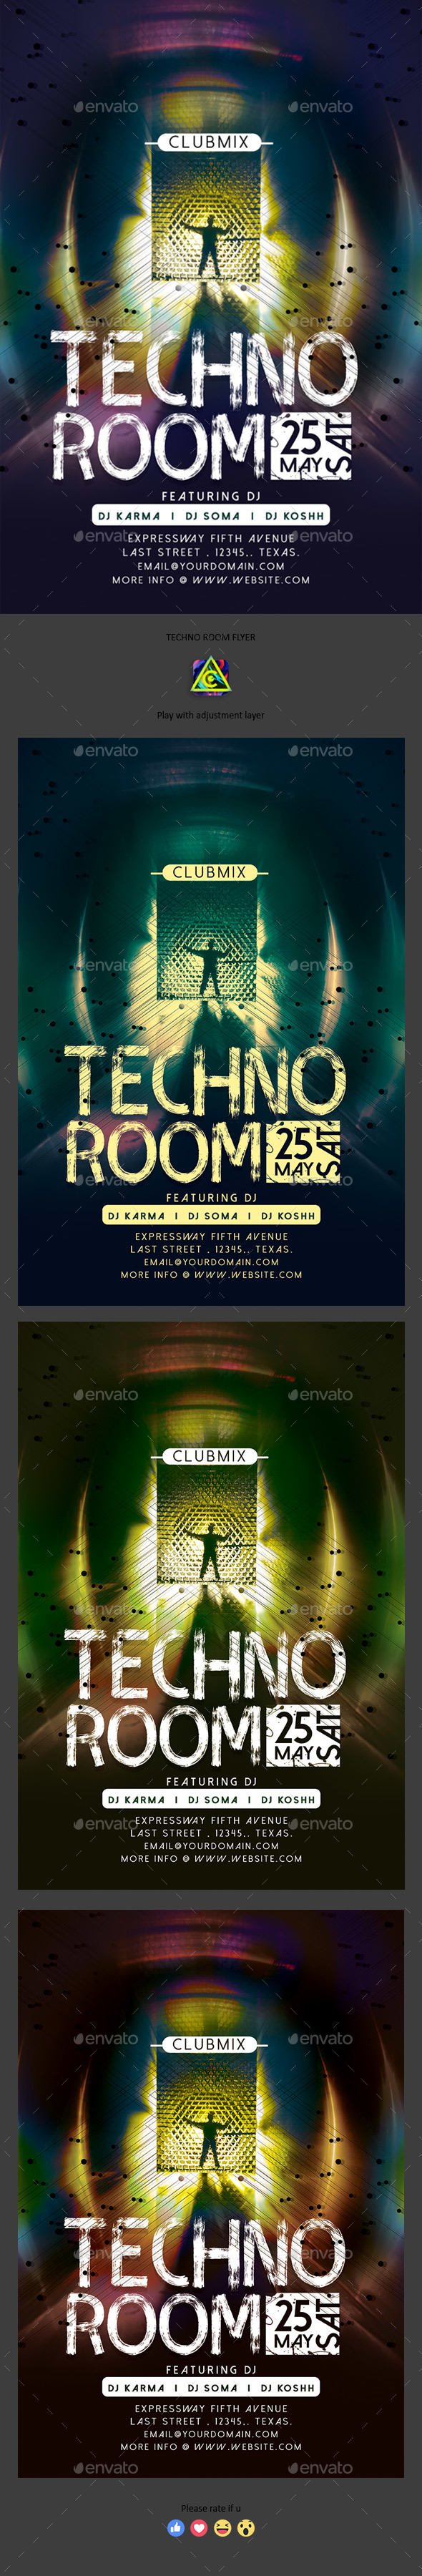 Techno Room Flyer - Clubs & Parties Events